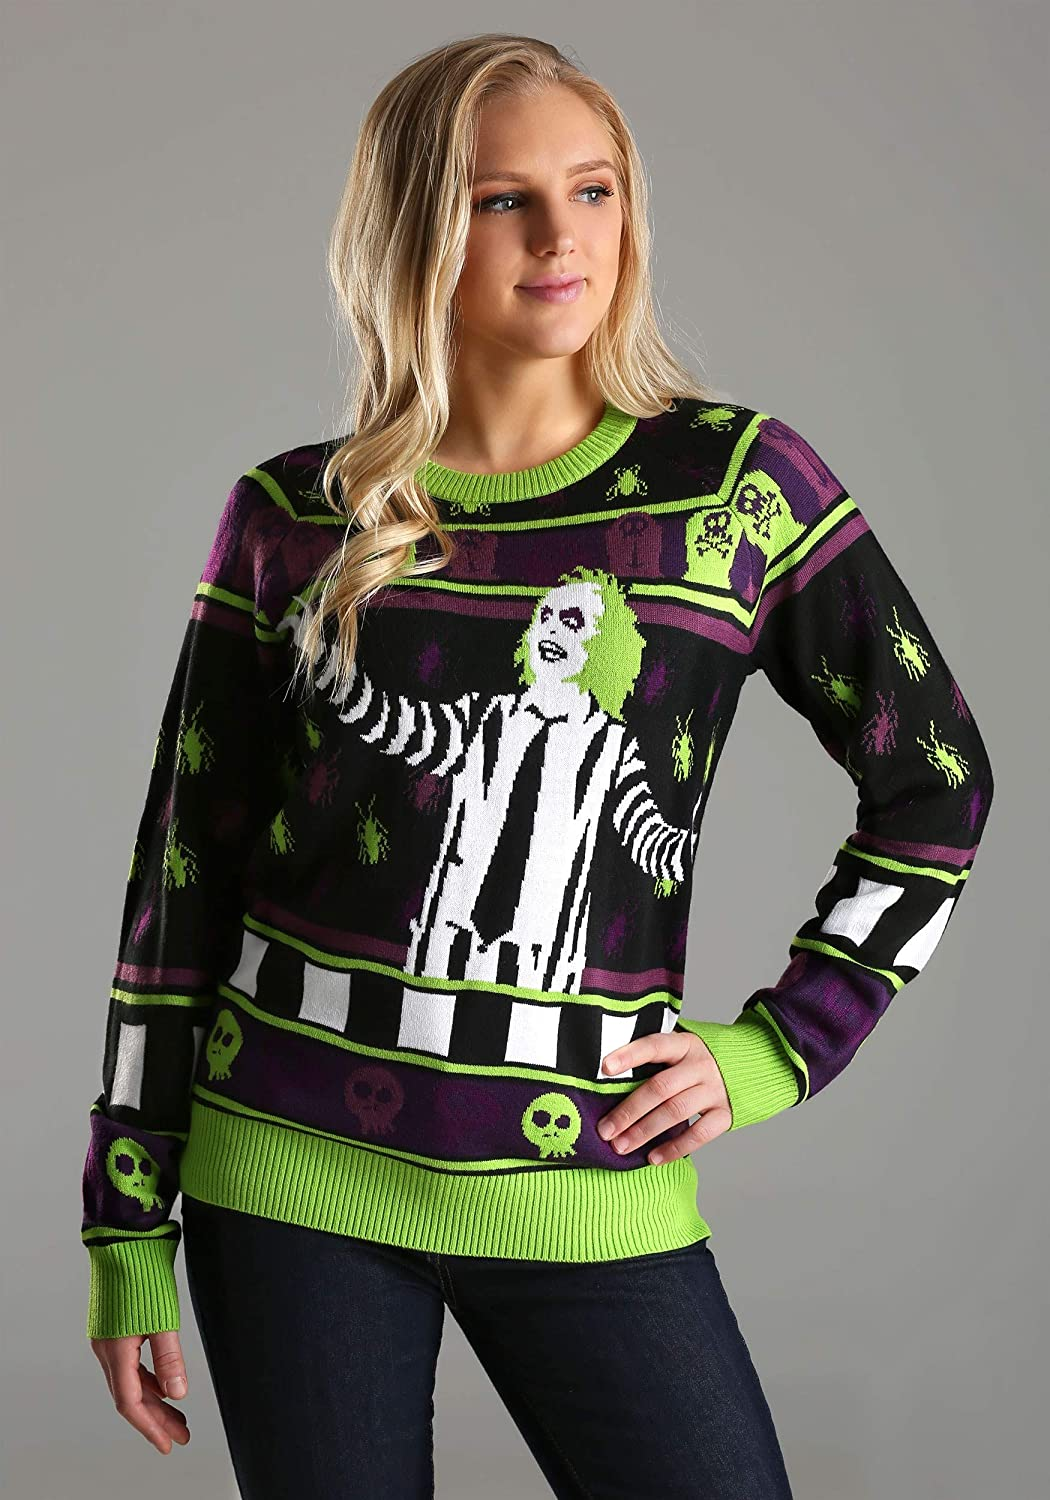 Fun Costumes Beetlejuice It's Showtime! Adult Halloween Sweater